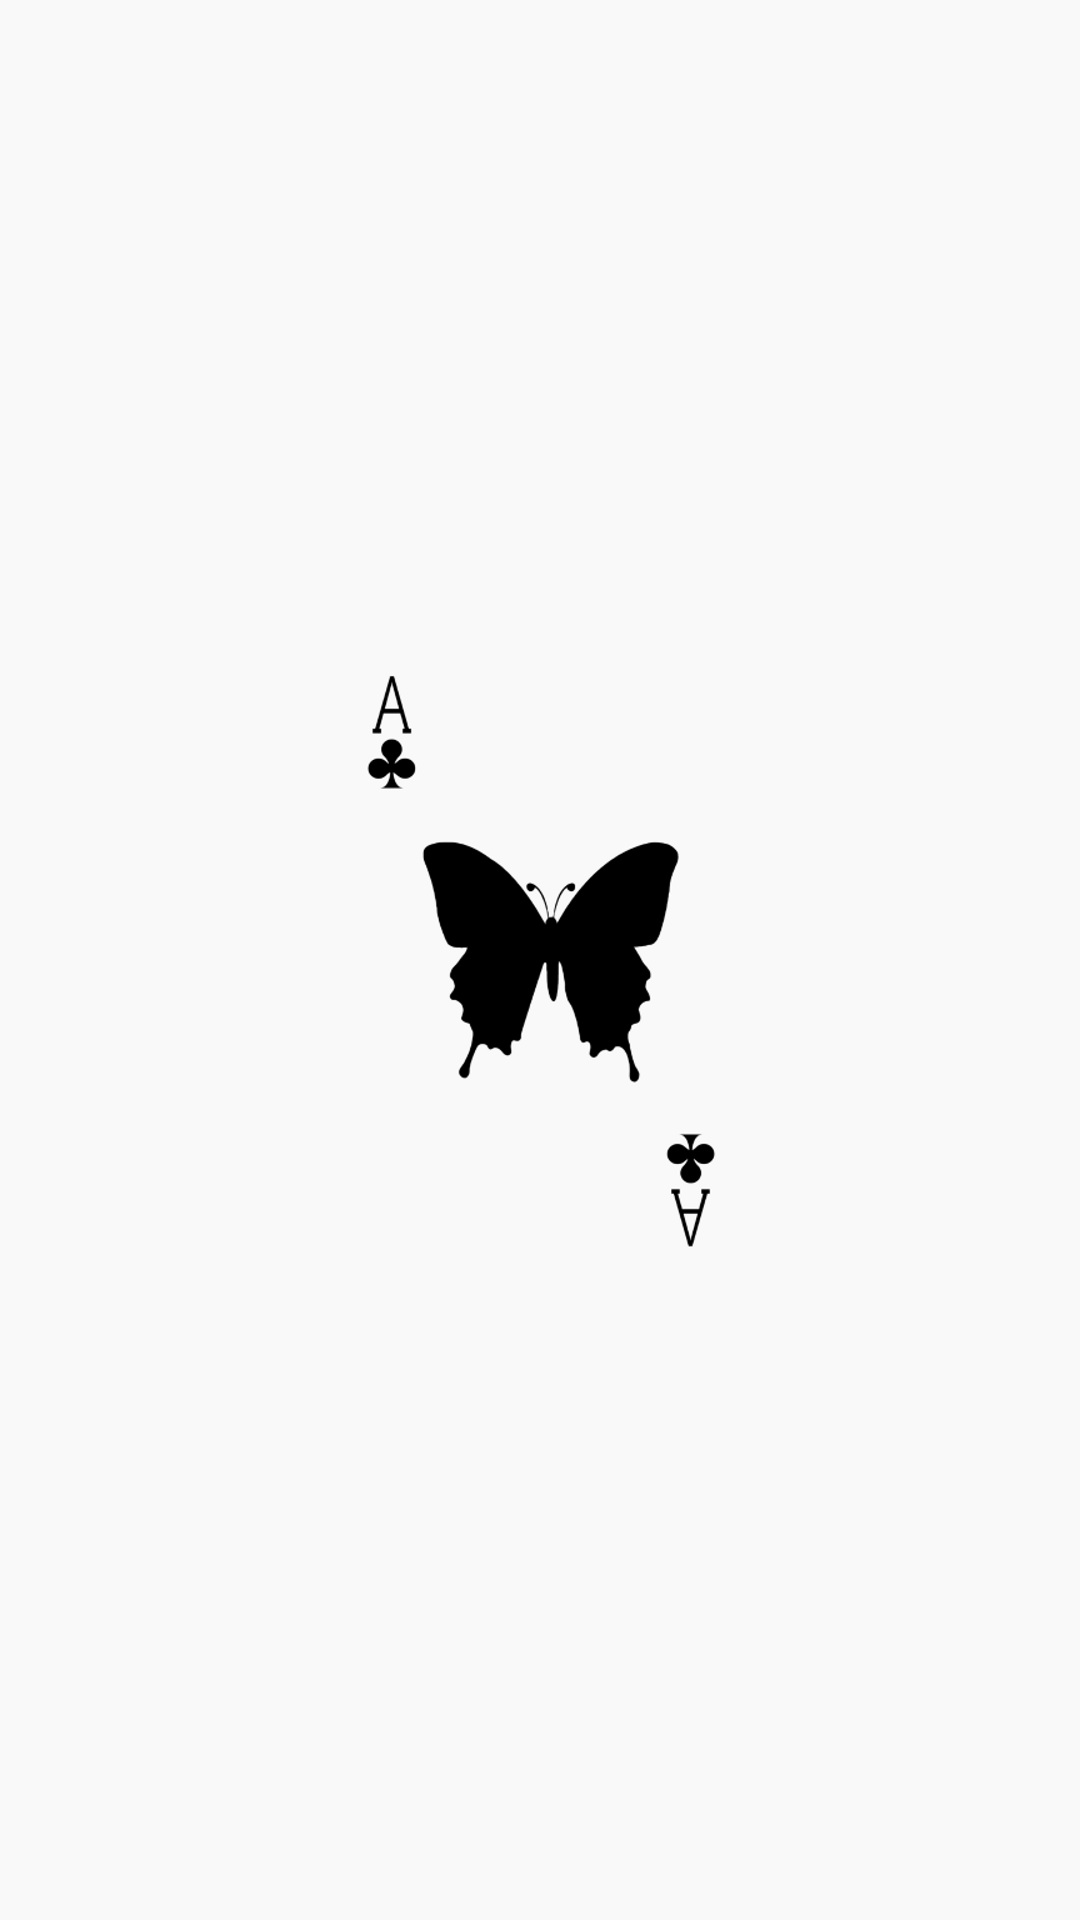 Butterfly Iphone Wallpaper Aesthetic Ipcwallpapers In 2020 Butterfly Wallpaper Iphone Butterfly Wallpaper Black Aesthetic Wallpaper